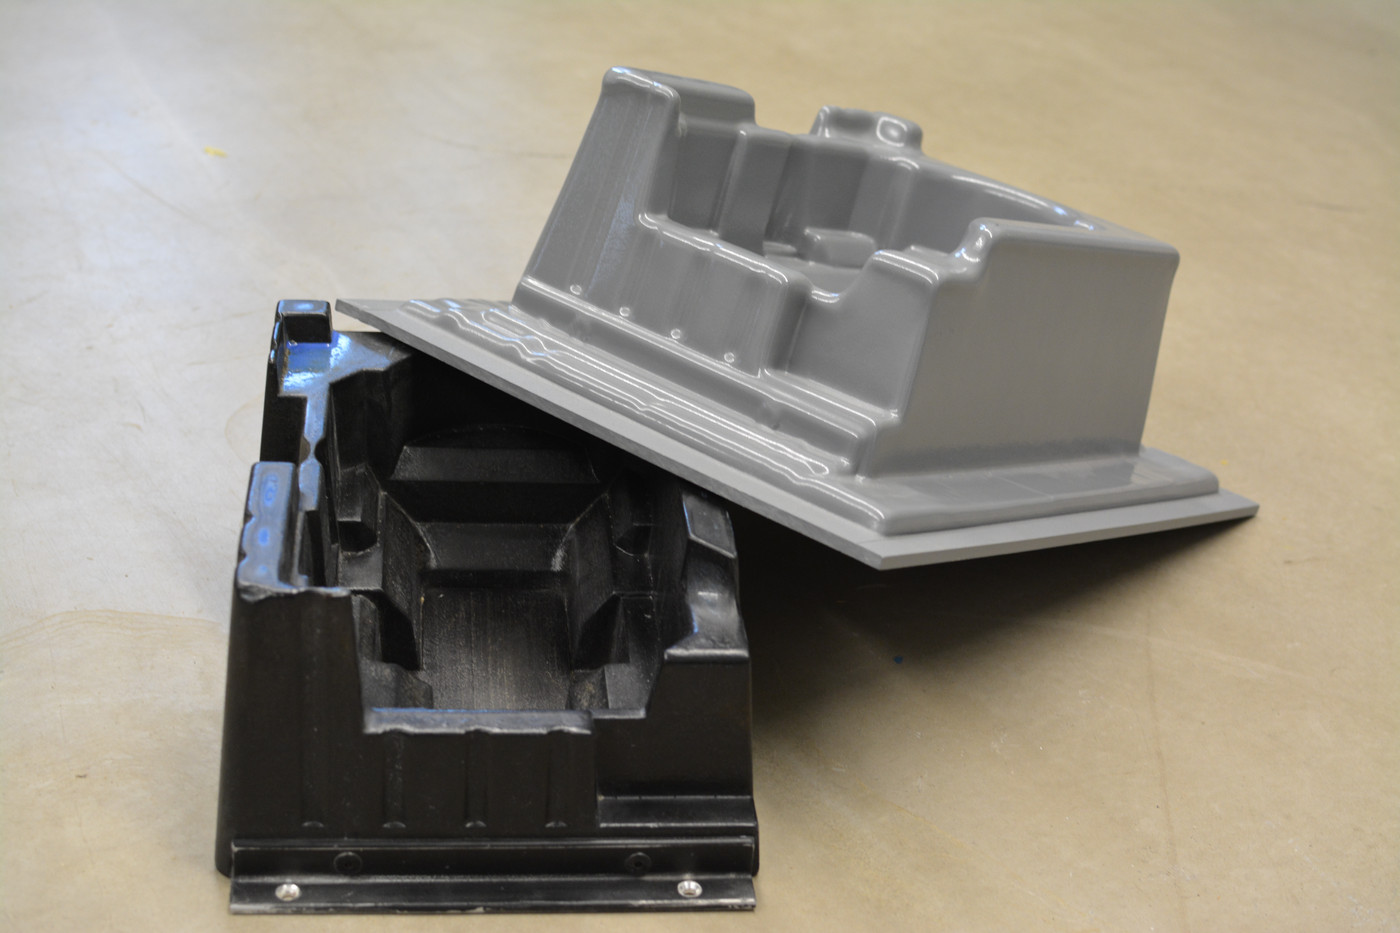 Vacuum Forming Tool and Finished Part